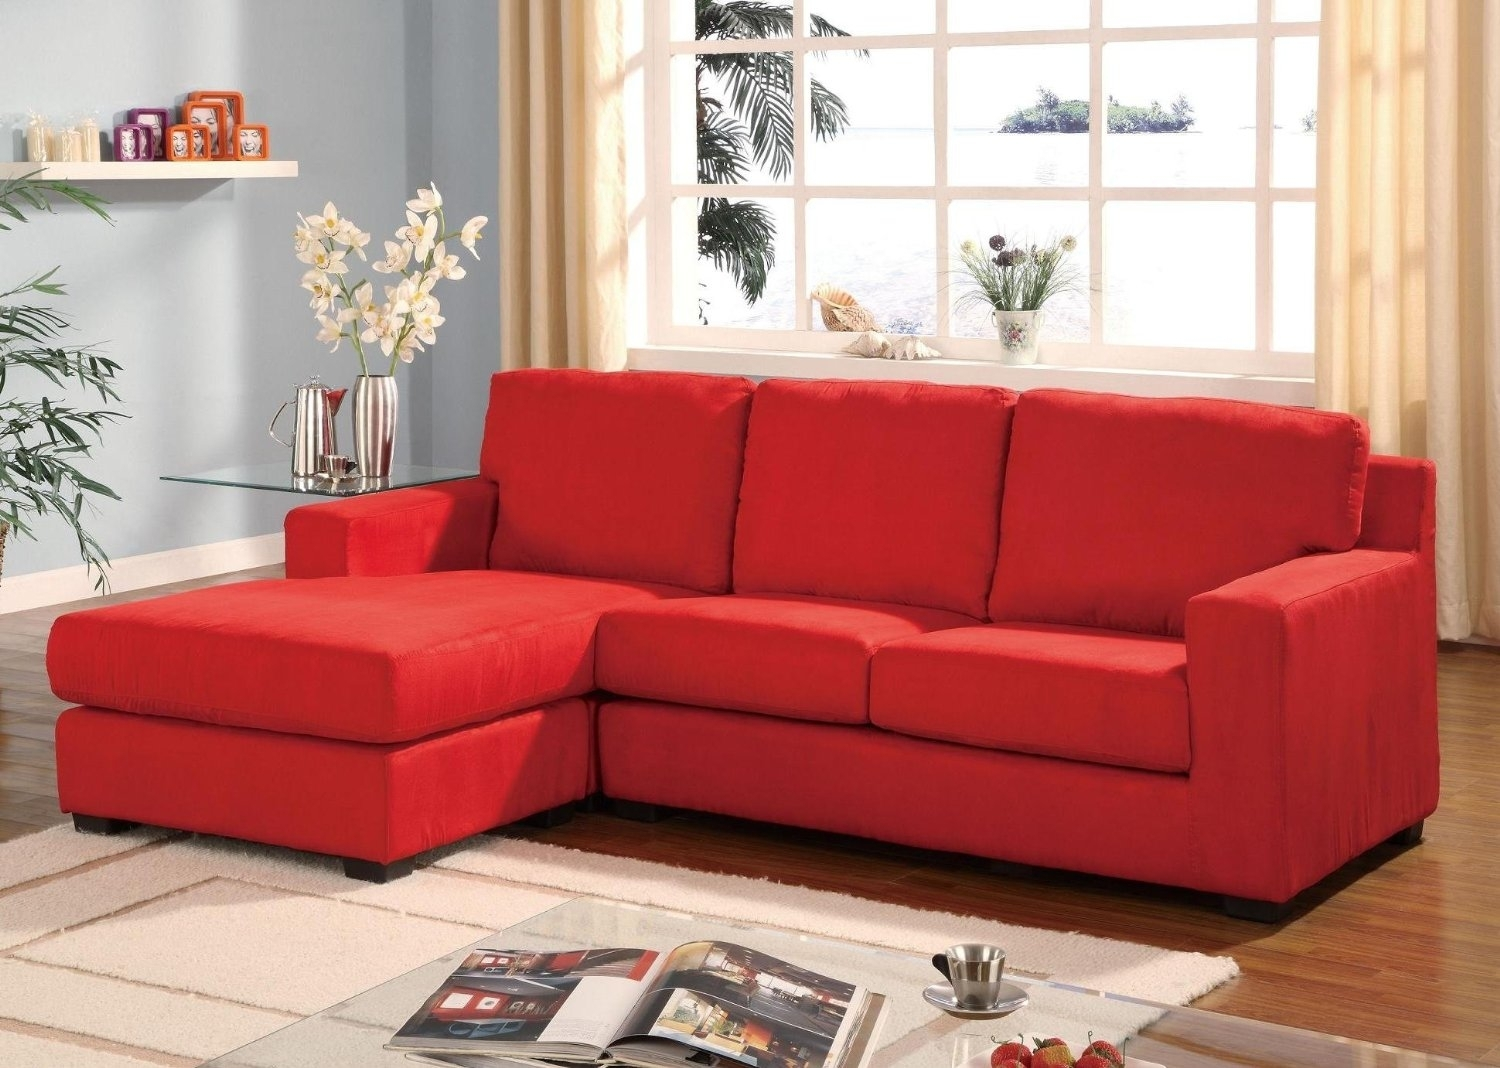 Small Red Sectional Sofa – Home And Textiles With Regard To Small Red Leather Sectional Sofas (Image 7 of 10)